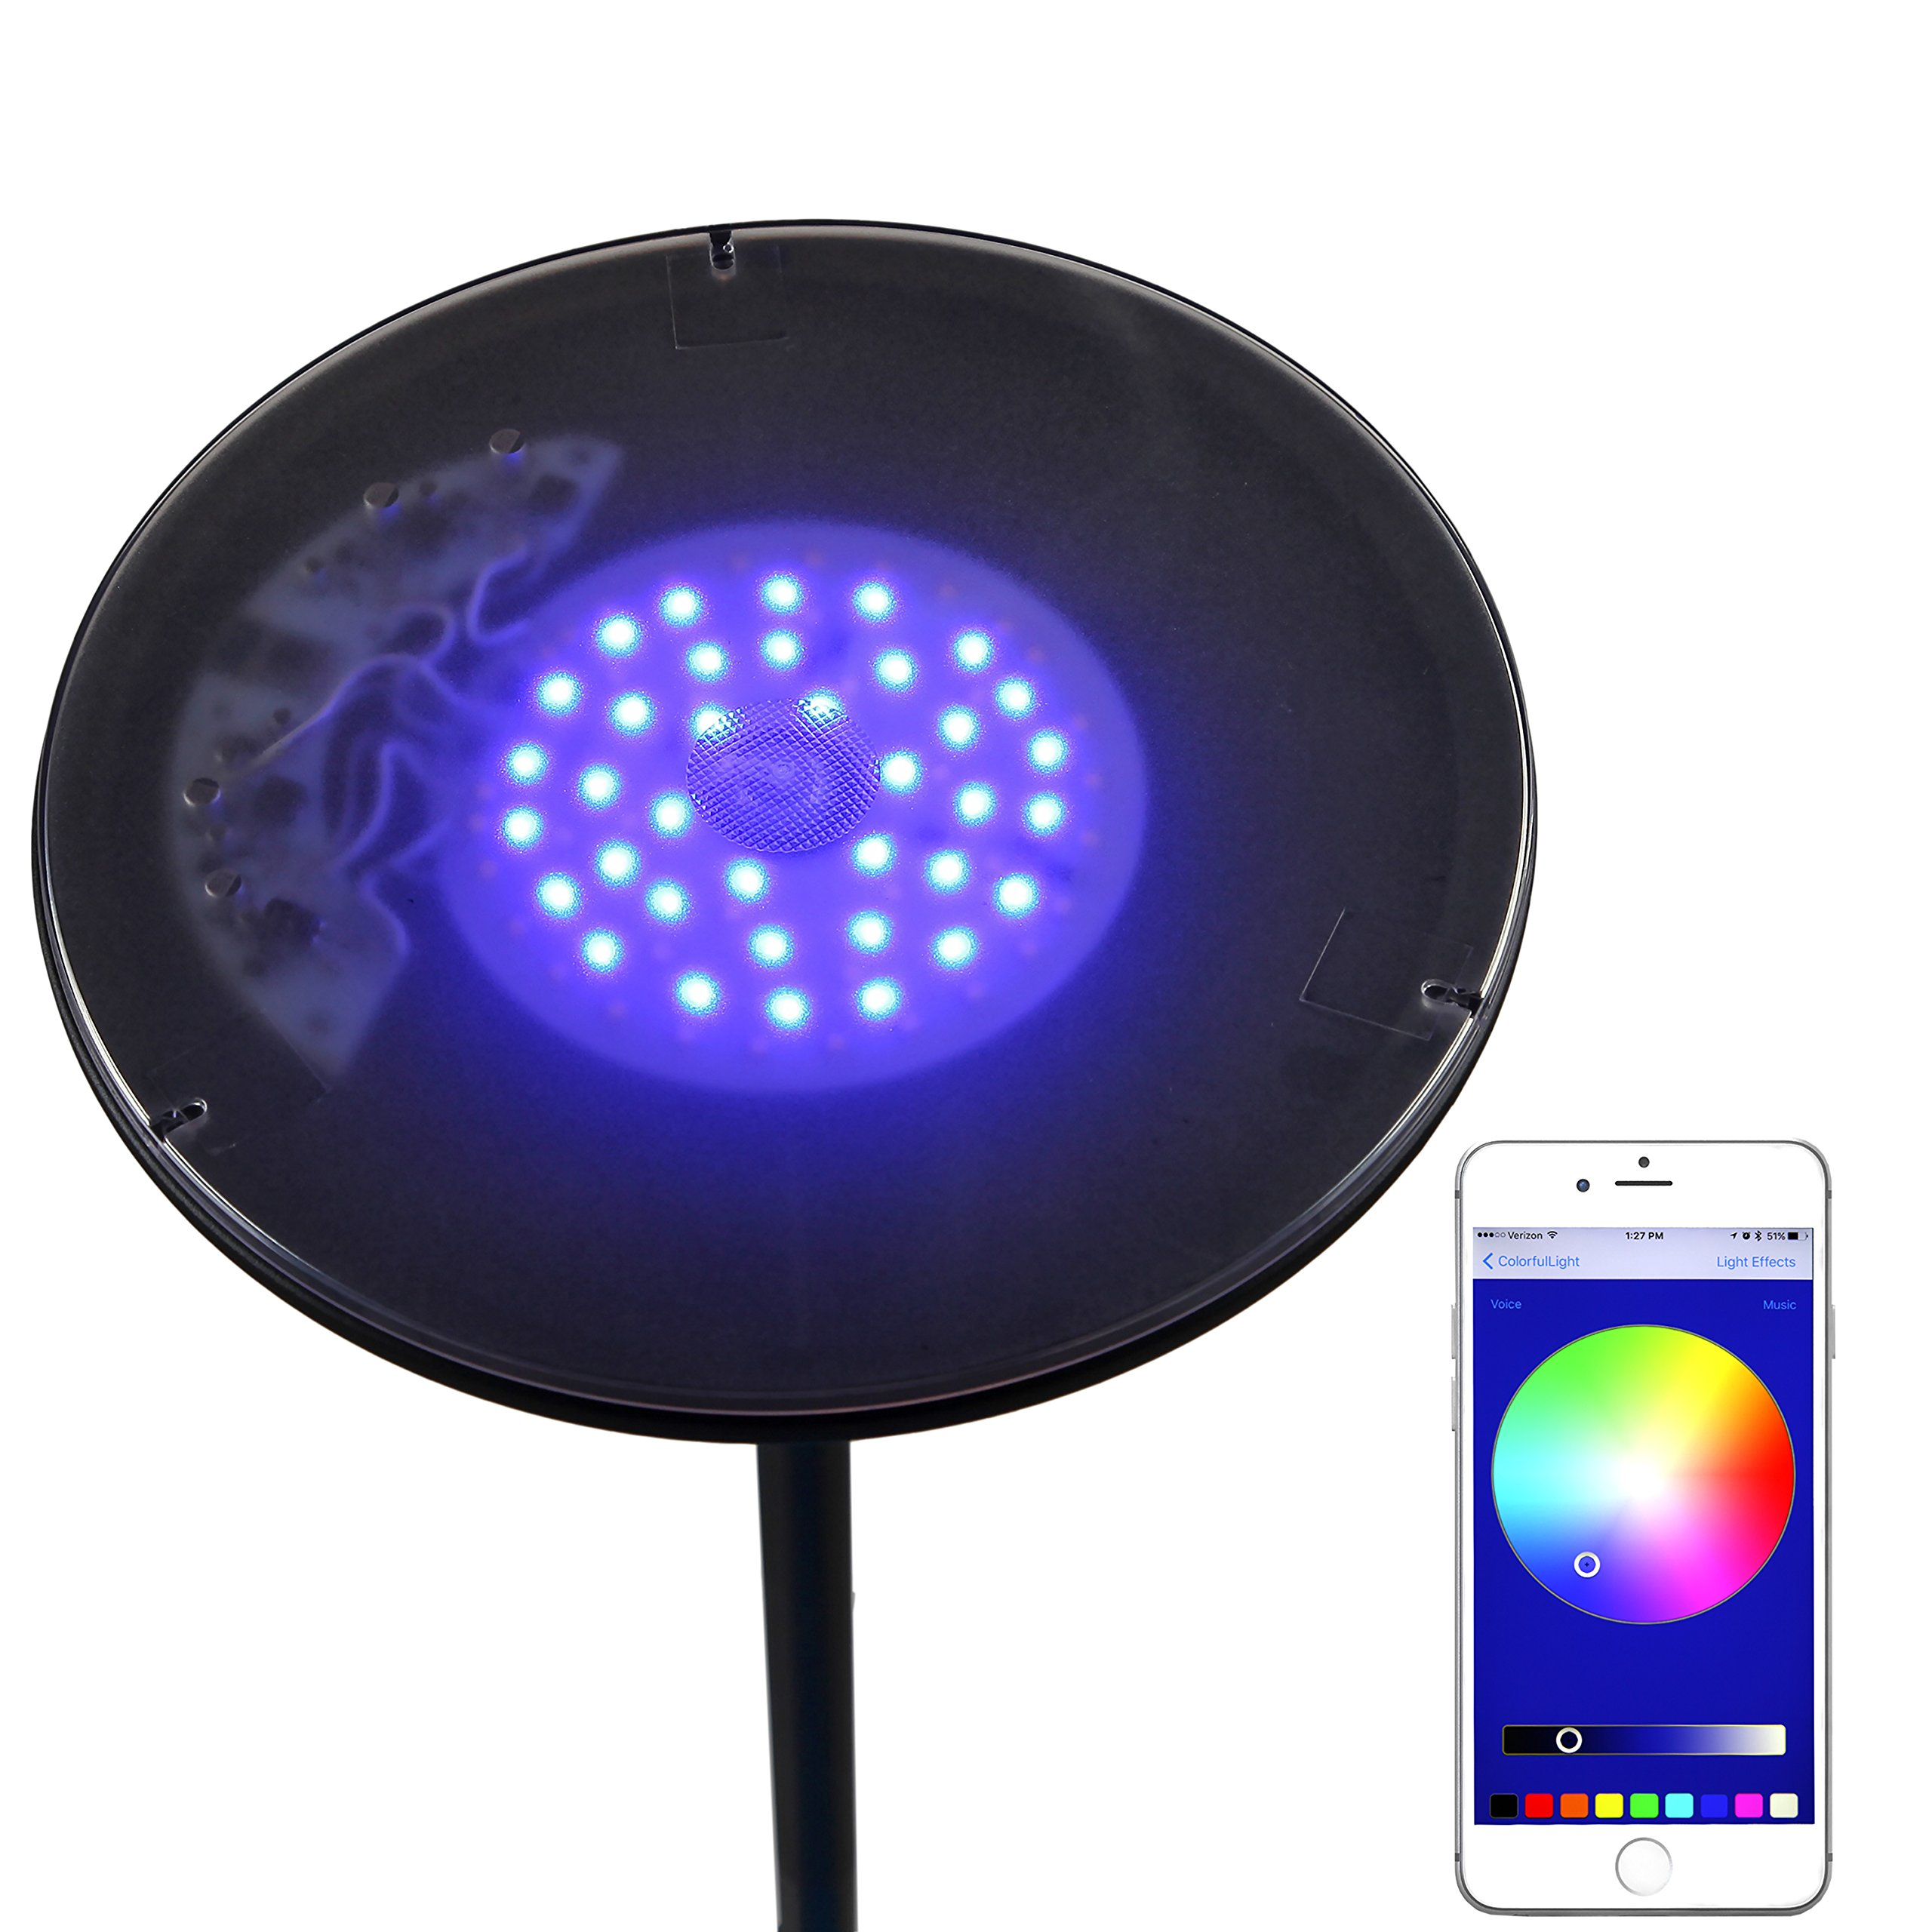 Brightech Kuler Sky Color Changing Torchiere LED Floor Lamp - Dimmable, iOs & Android App Remote Control Light - Lamp for Living Rooms, Game Rooms & Bedrooms - Adjustable Pivoting Head - Black by Brightech (Image #5)